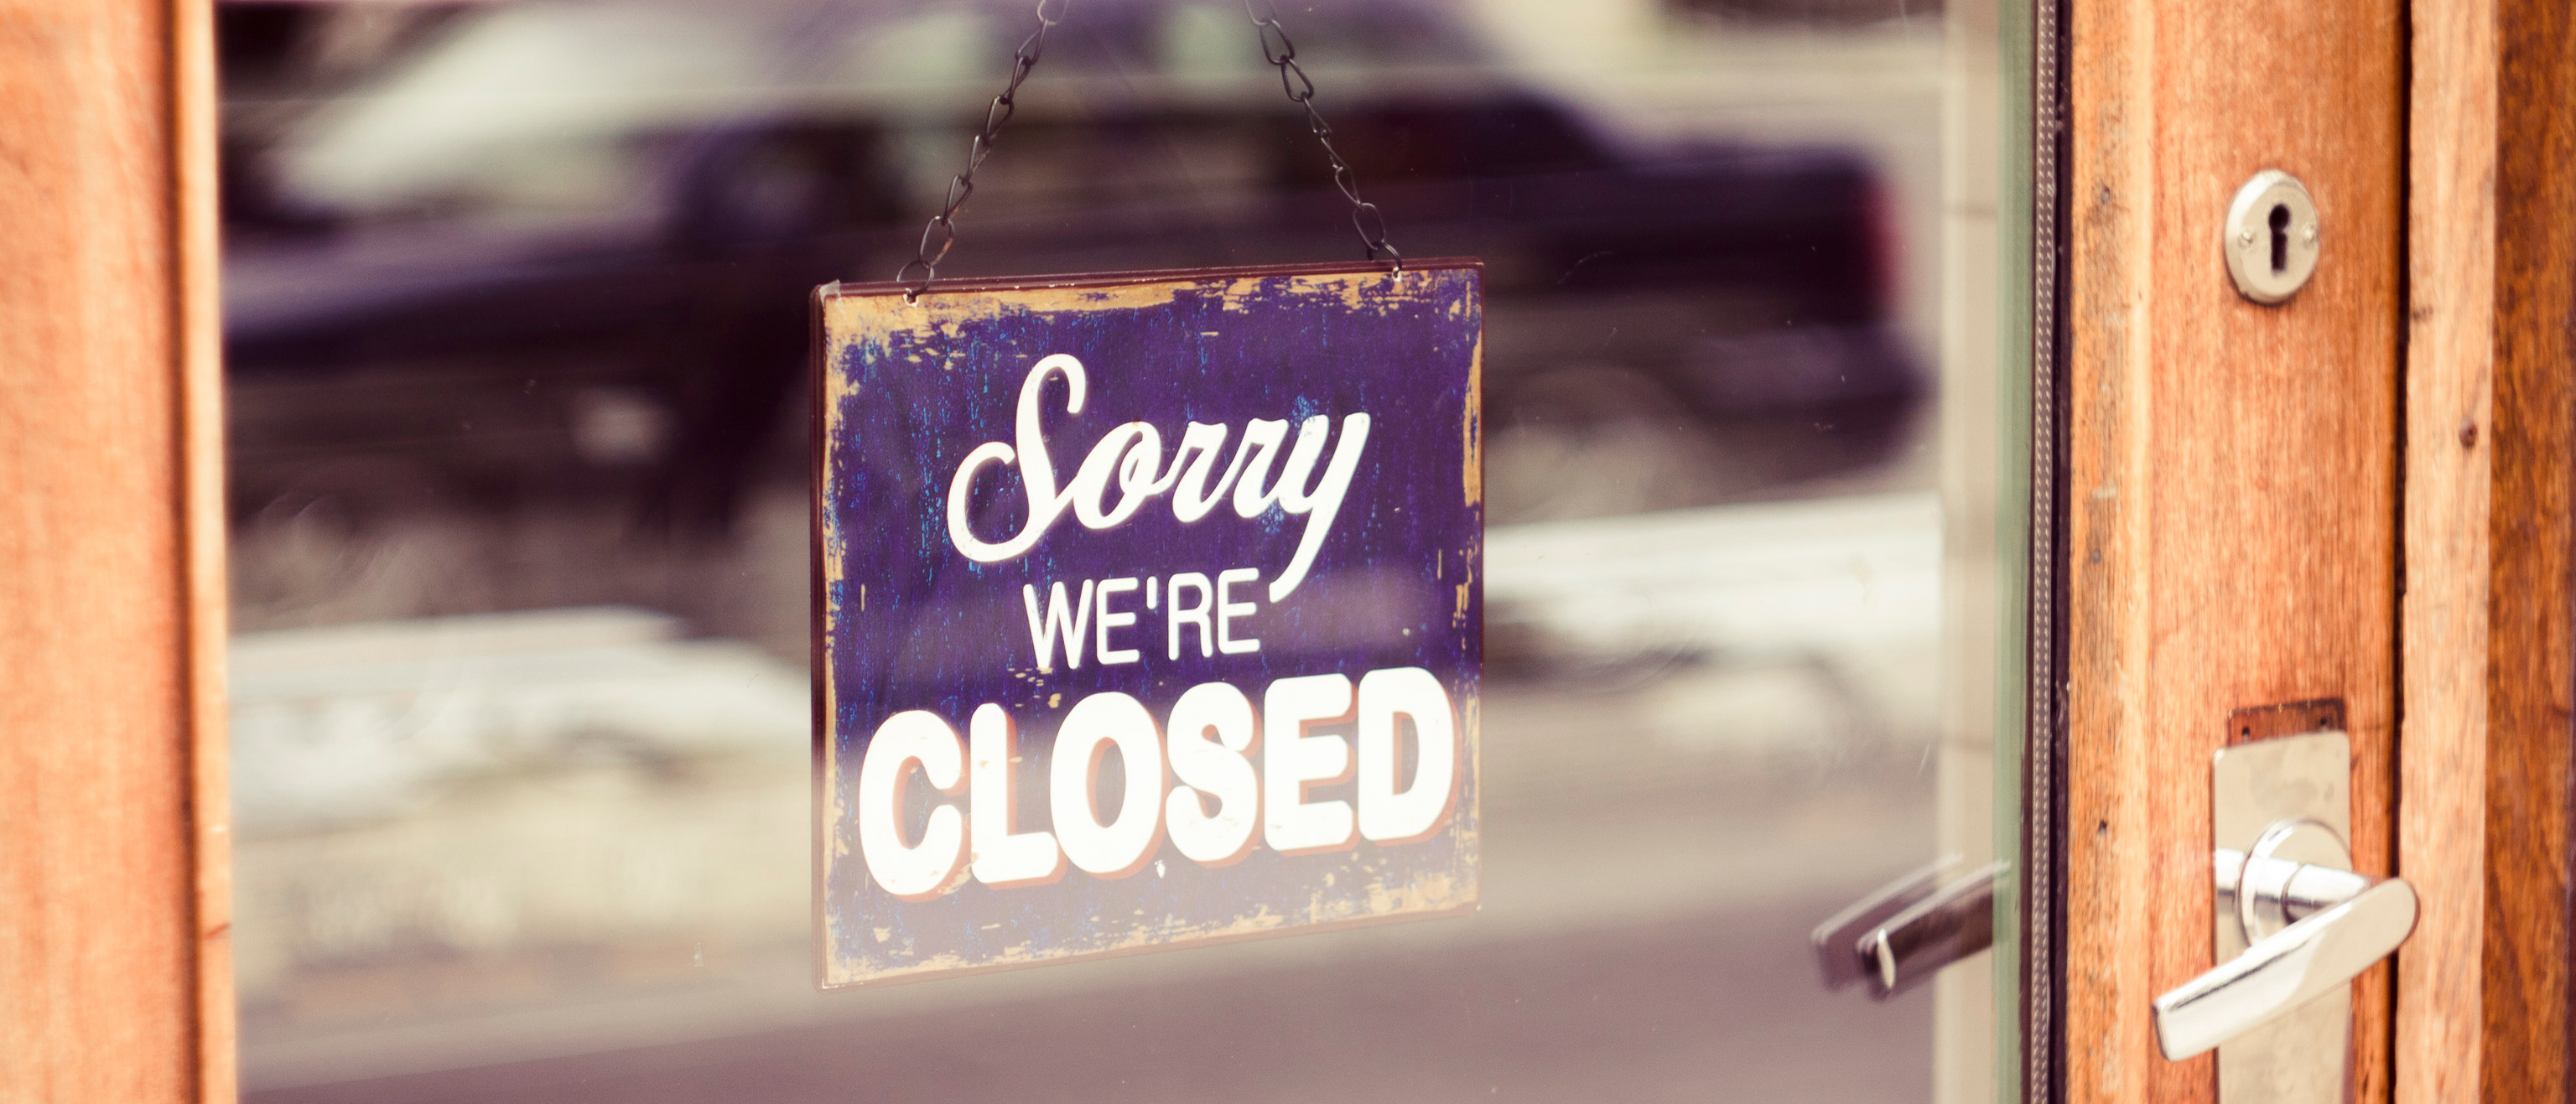 Sorry we're closed sign hung on the store's entrance door